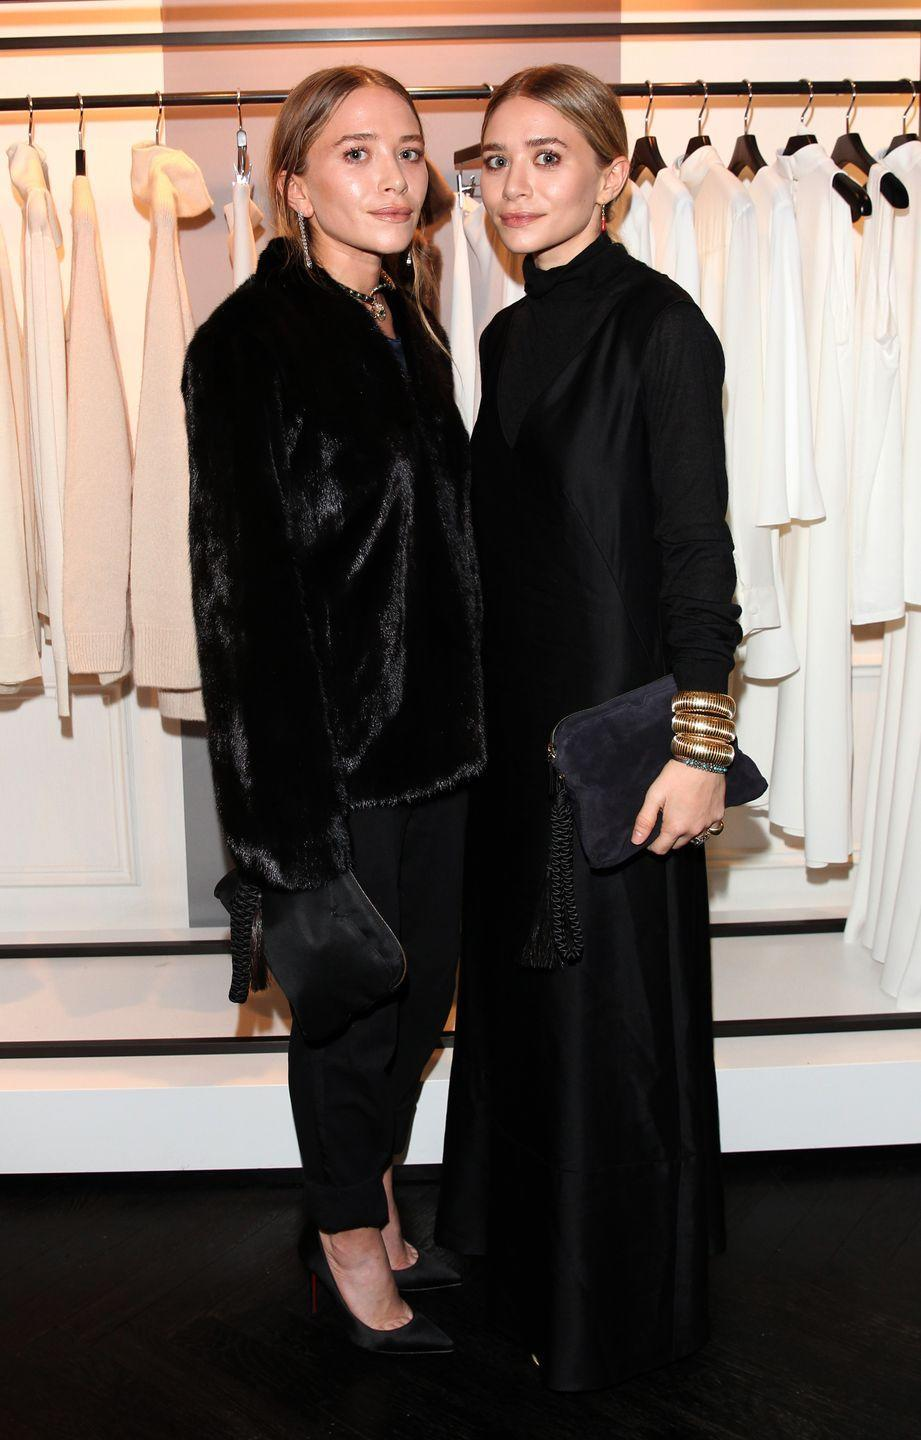 "<p>While the Olsen twins have taken a step out of the TV and film spotlight, they are now two of the most successful designers in the fashion industry. Their couture label <a href=""https://www.therow.com/"" rel=""nofollow noopener"" target=""_blank"" data-ylk=""slk:The Row"" class=""link rapid-noclick-resp"">The Row</a> and contemporary collection <a href=""http://www.elizabethandjames.us/"" rel=""nofollow noopener"" target=""_blank"" data-ylk=""slk:Elizabeth & James"" class=""link rapid-noclick-resp"">Elizabeth & James</a> have gained huge followings amongst fashion's elite, as well as everyday women.</p>"